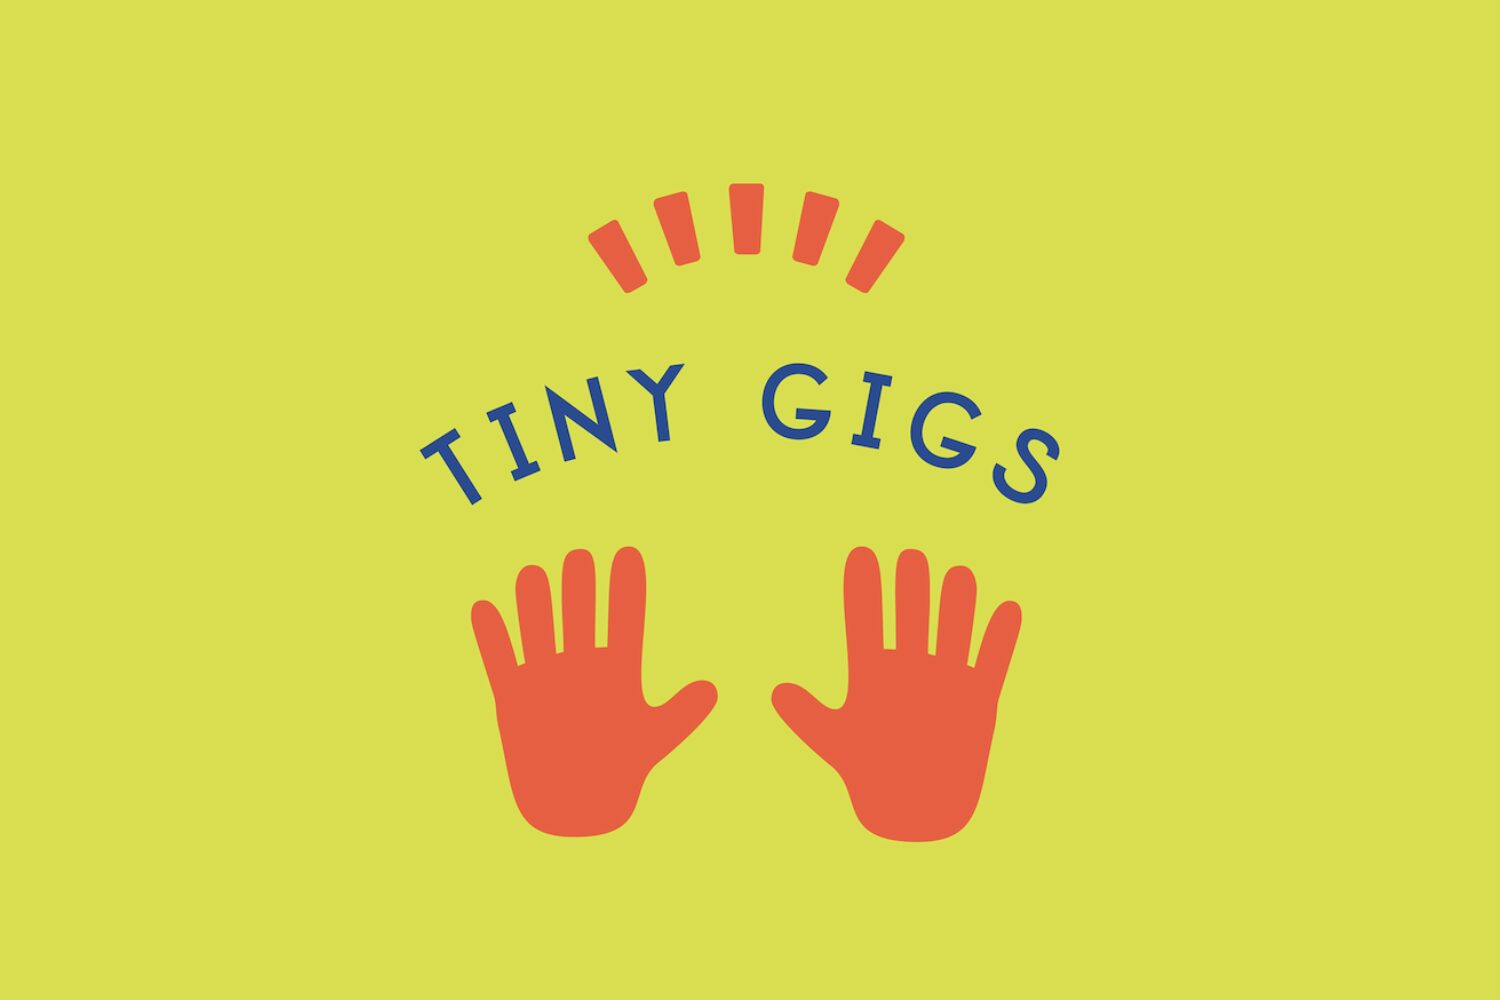 Tiny Changes announces Tiny Gigs